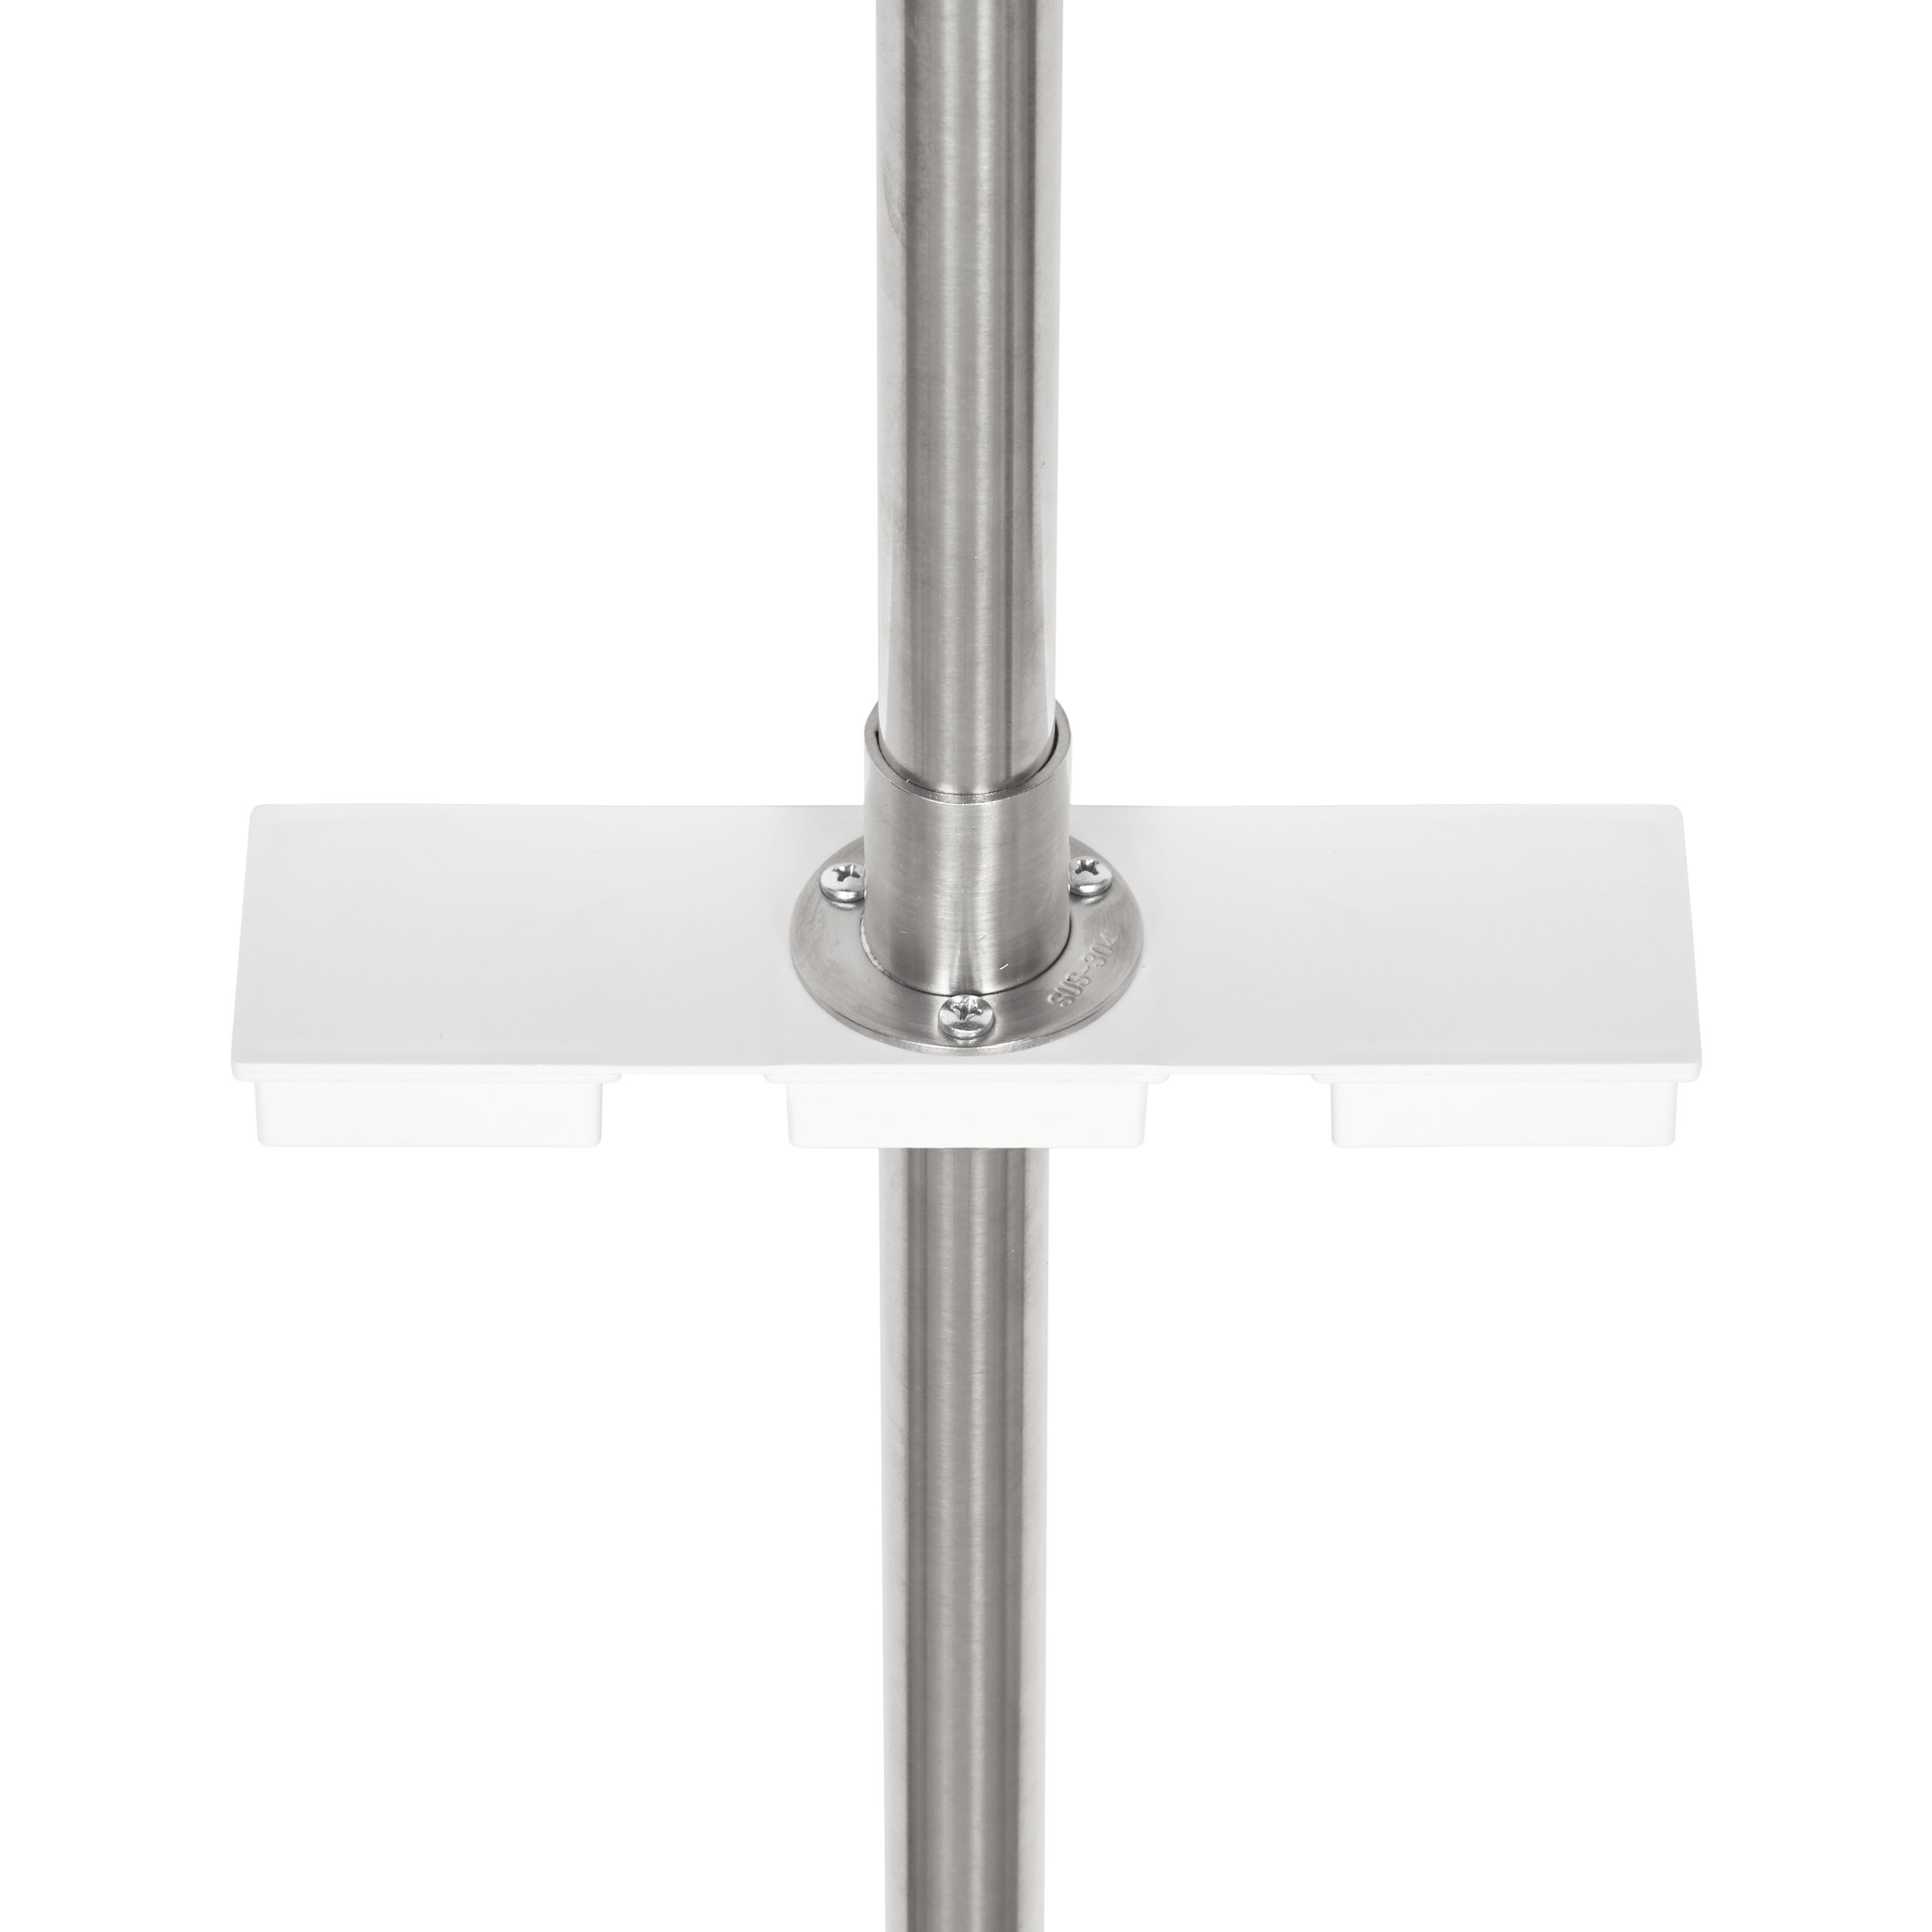 EverPanel Ceiling Brackets are adjustable and easily installed